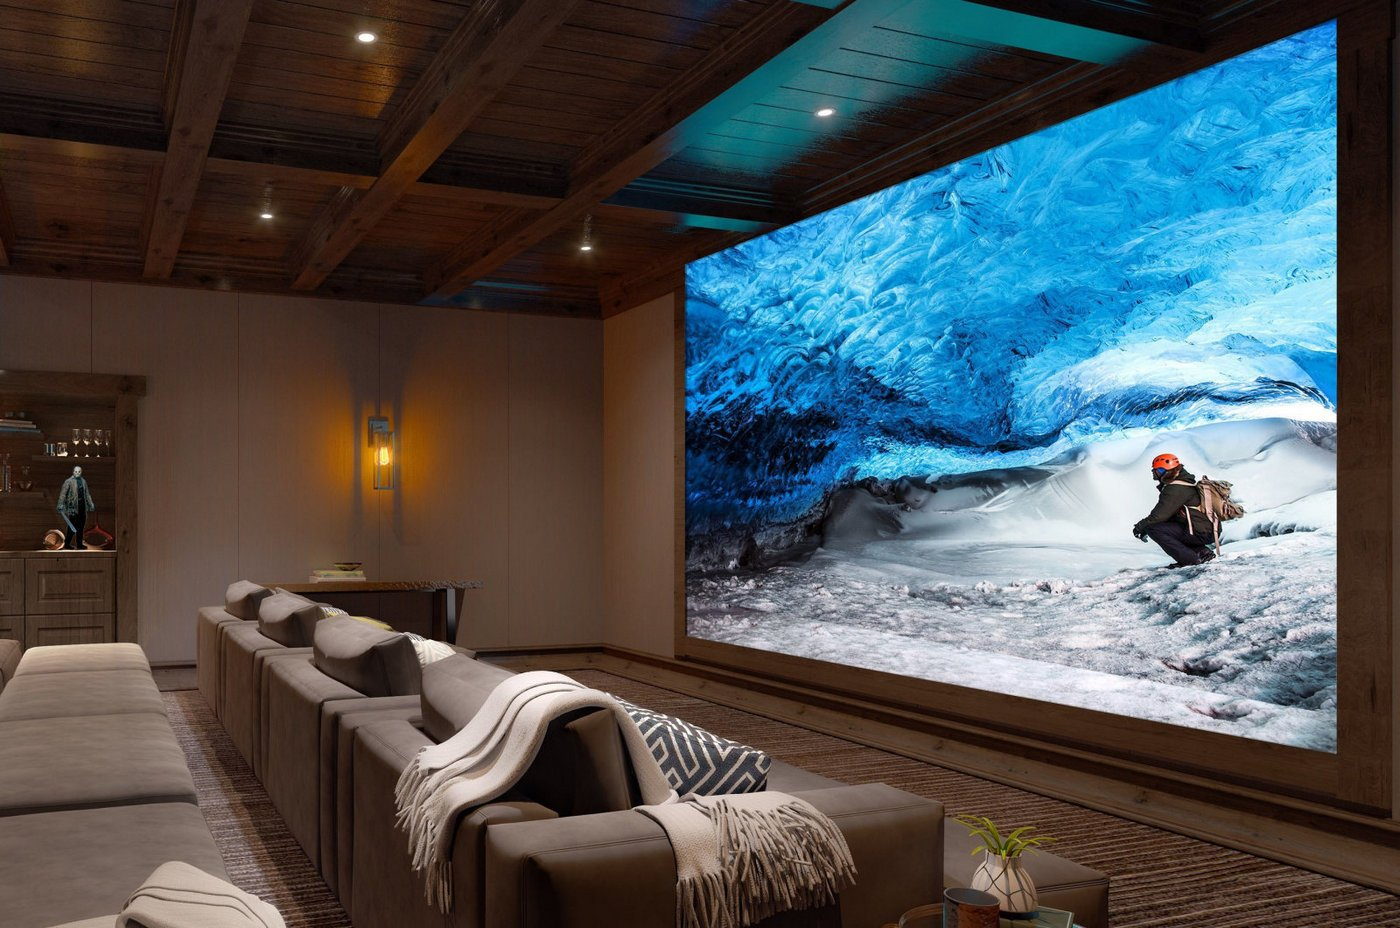 The mother of all TV's is here – Its 16k, 63 foot wide and costs $6 million